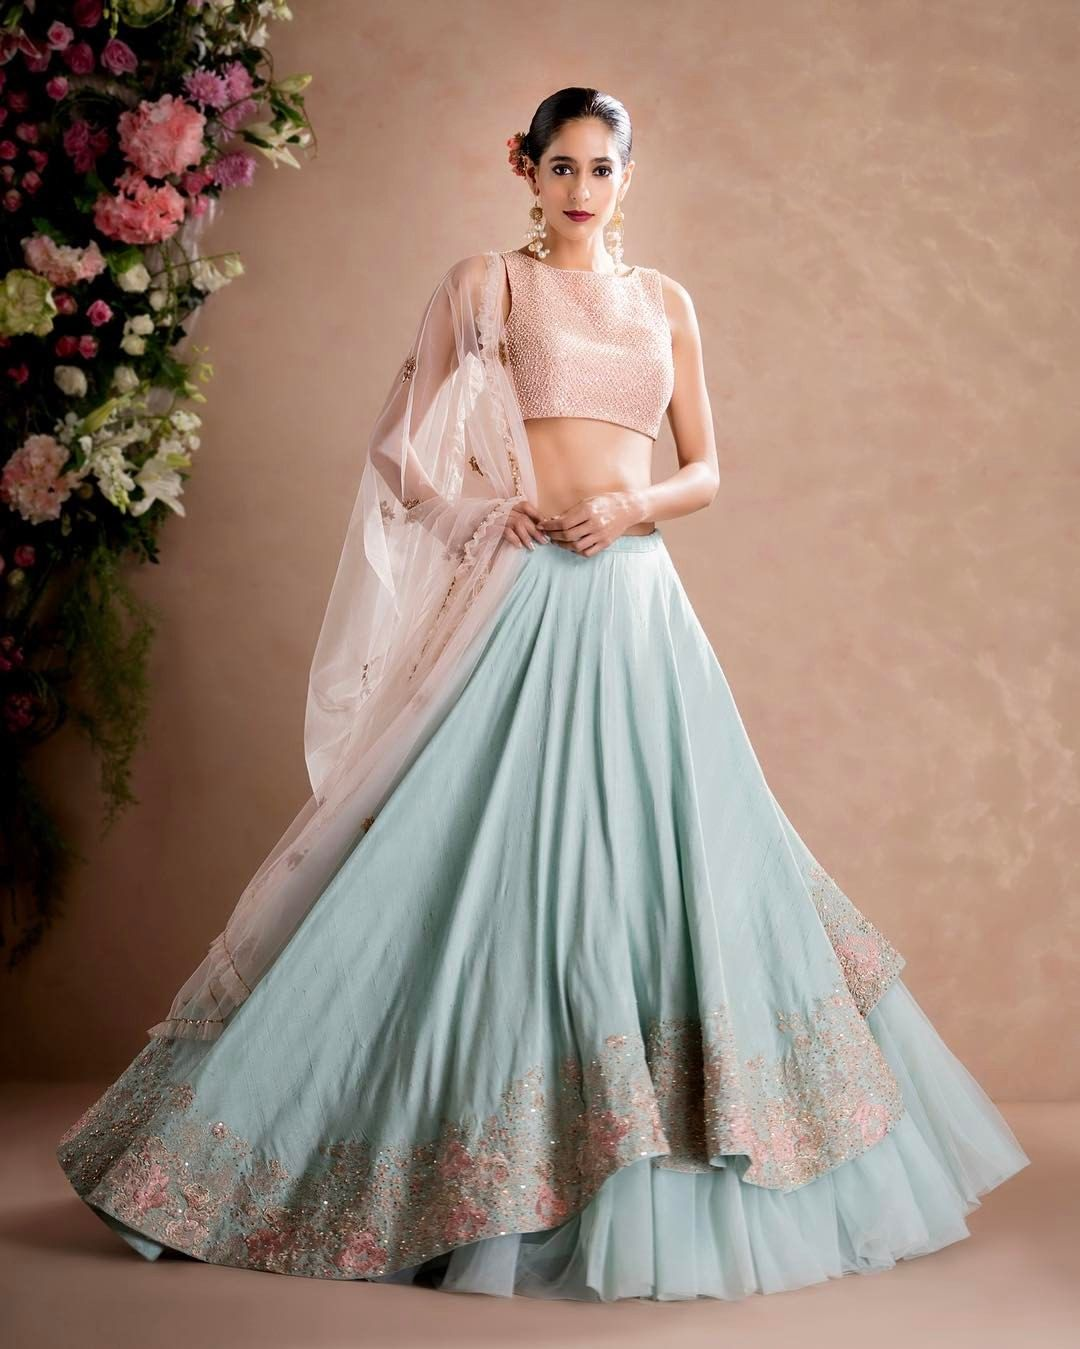 beautiful lehenga, blouse, model | Abdullahs shadi | Pinterest ...